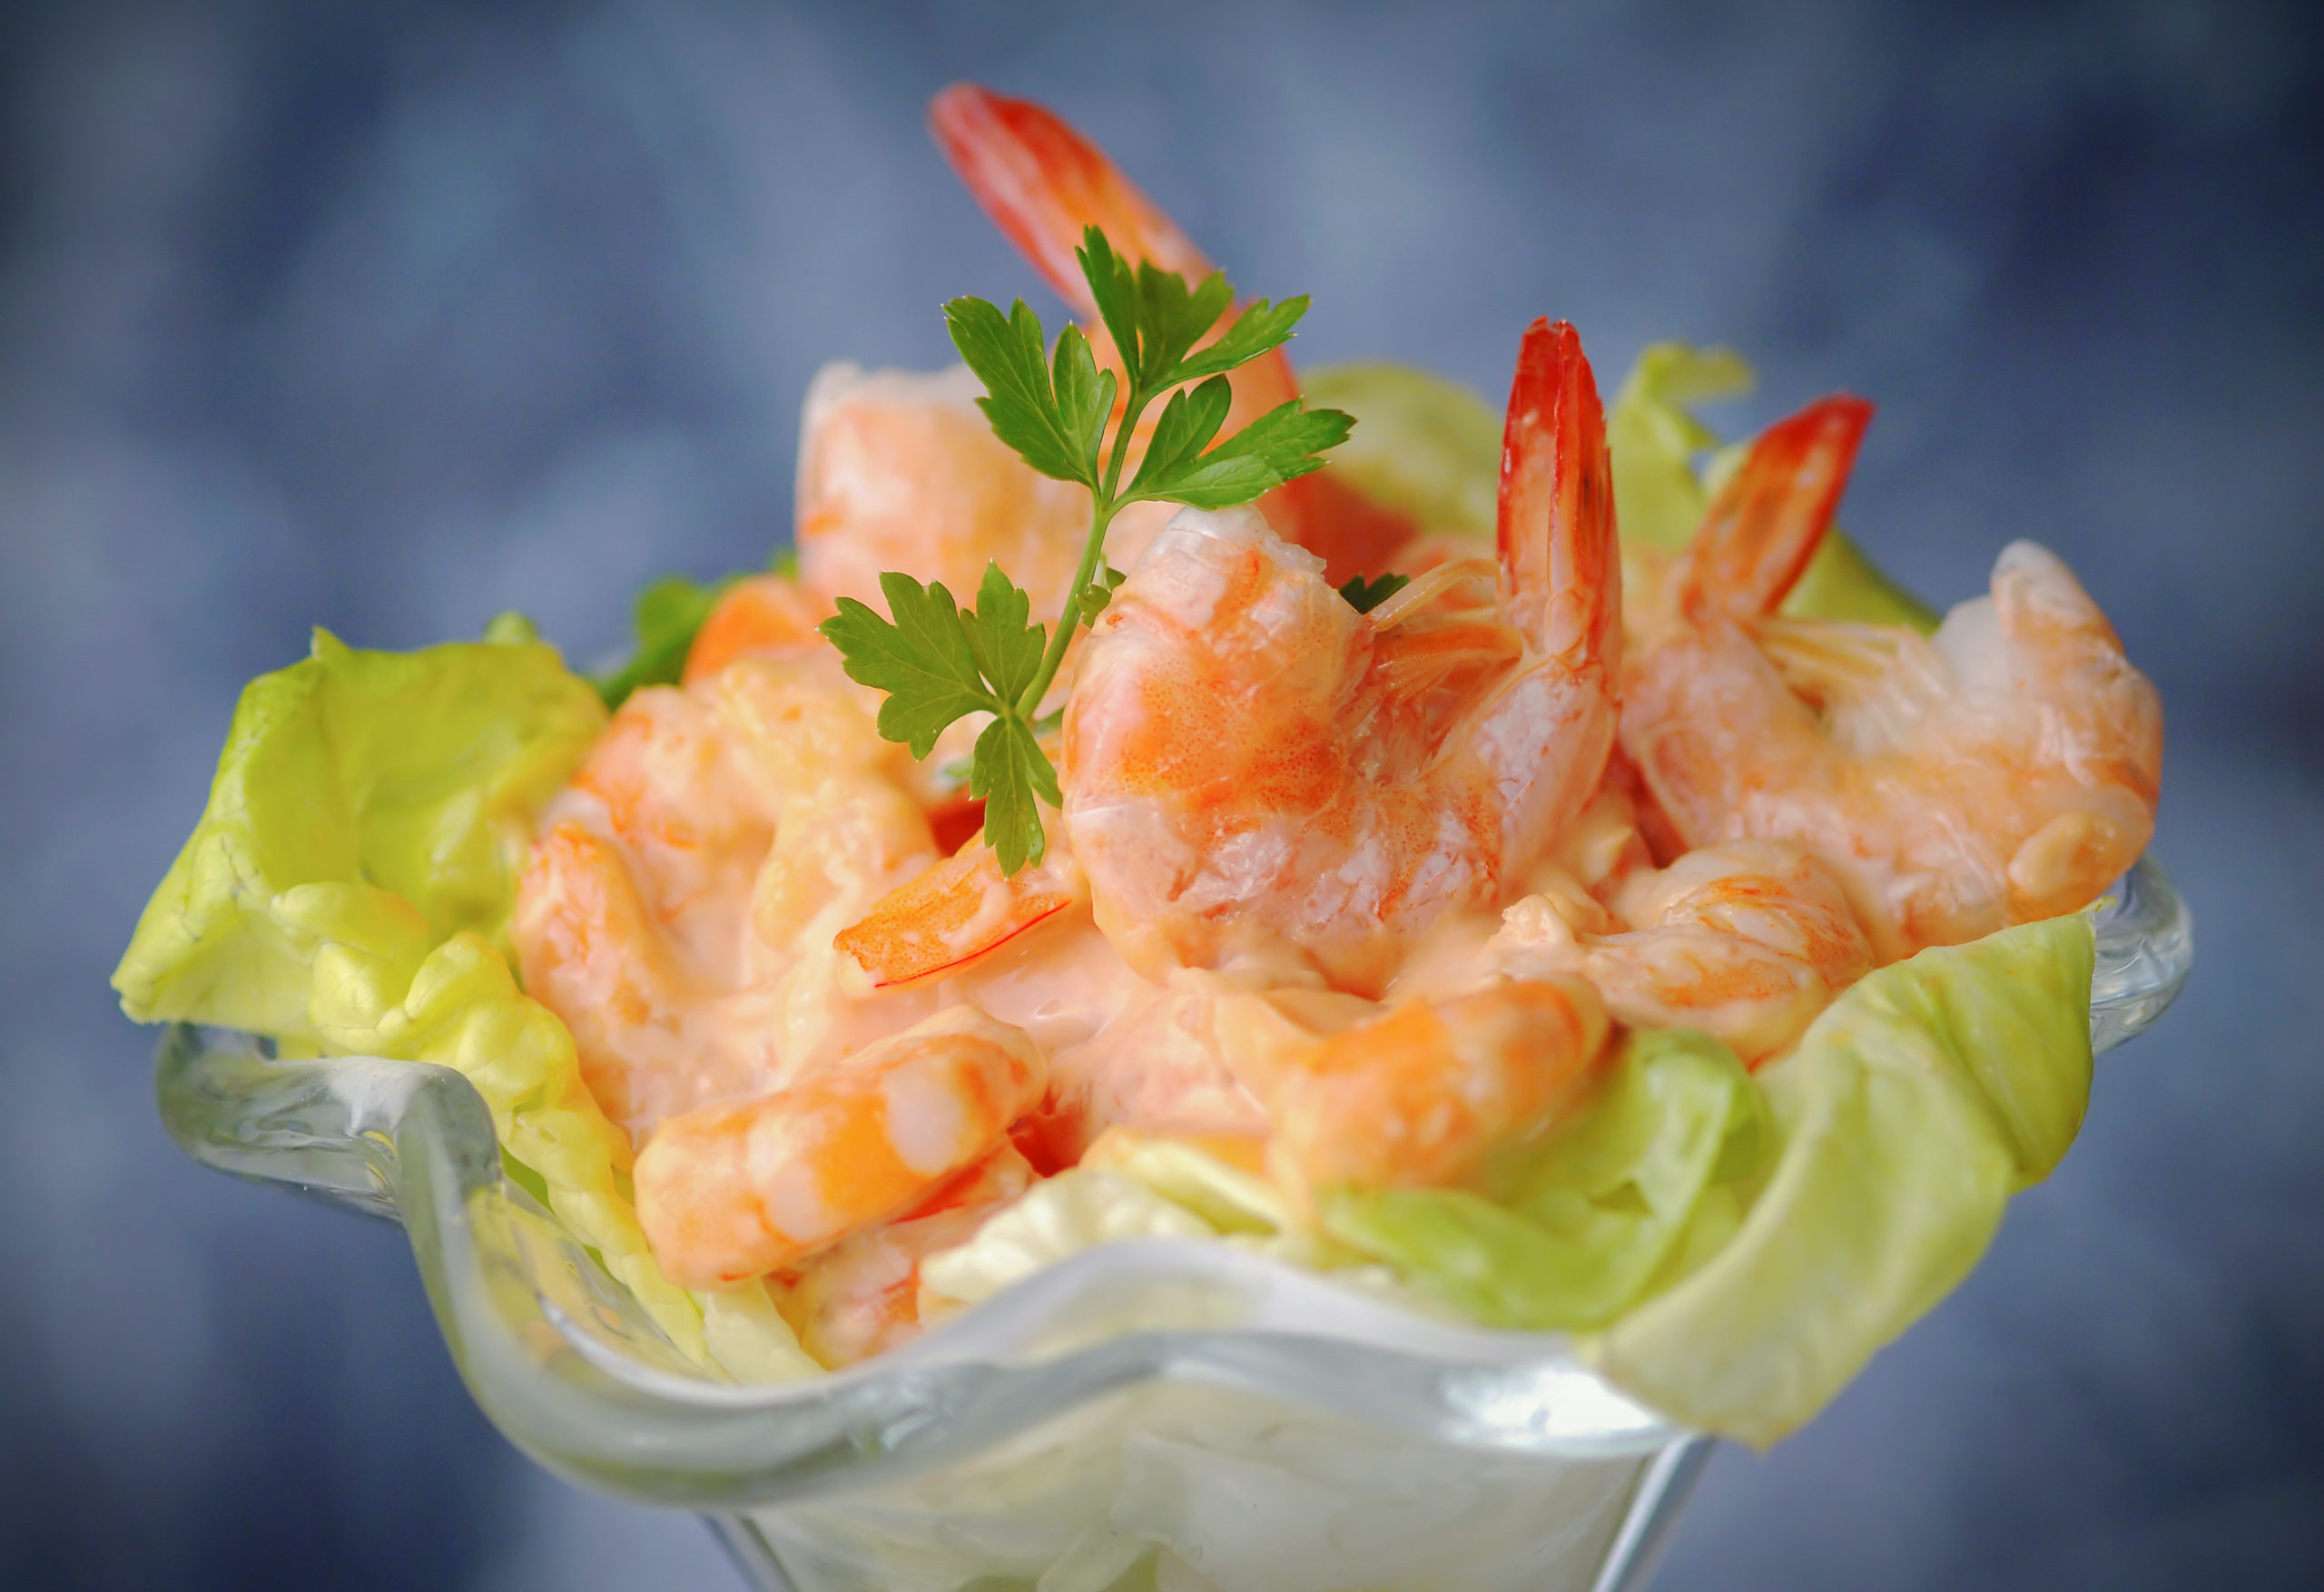 Prawn cocktail was popular in the 80s